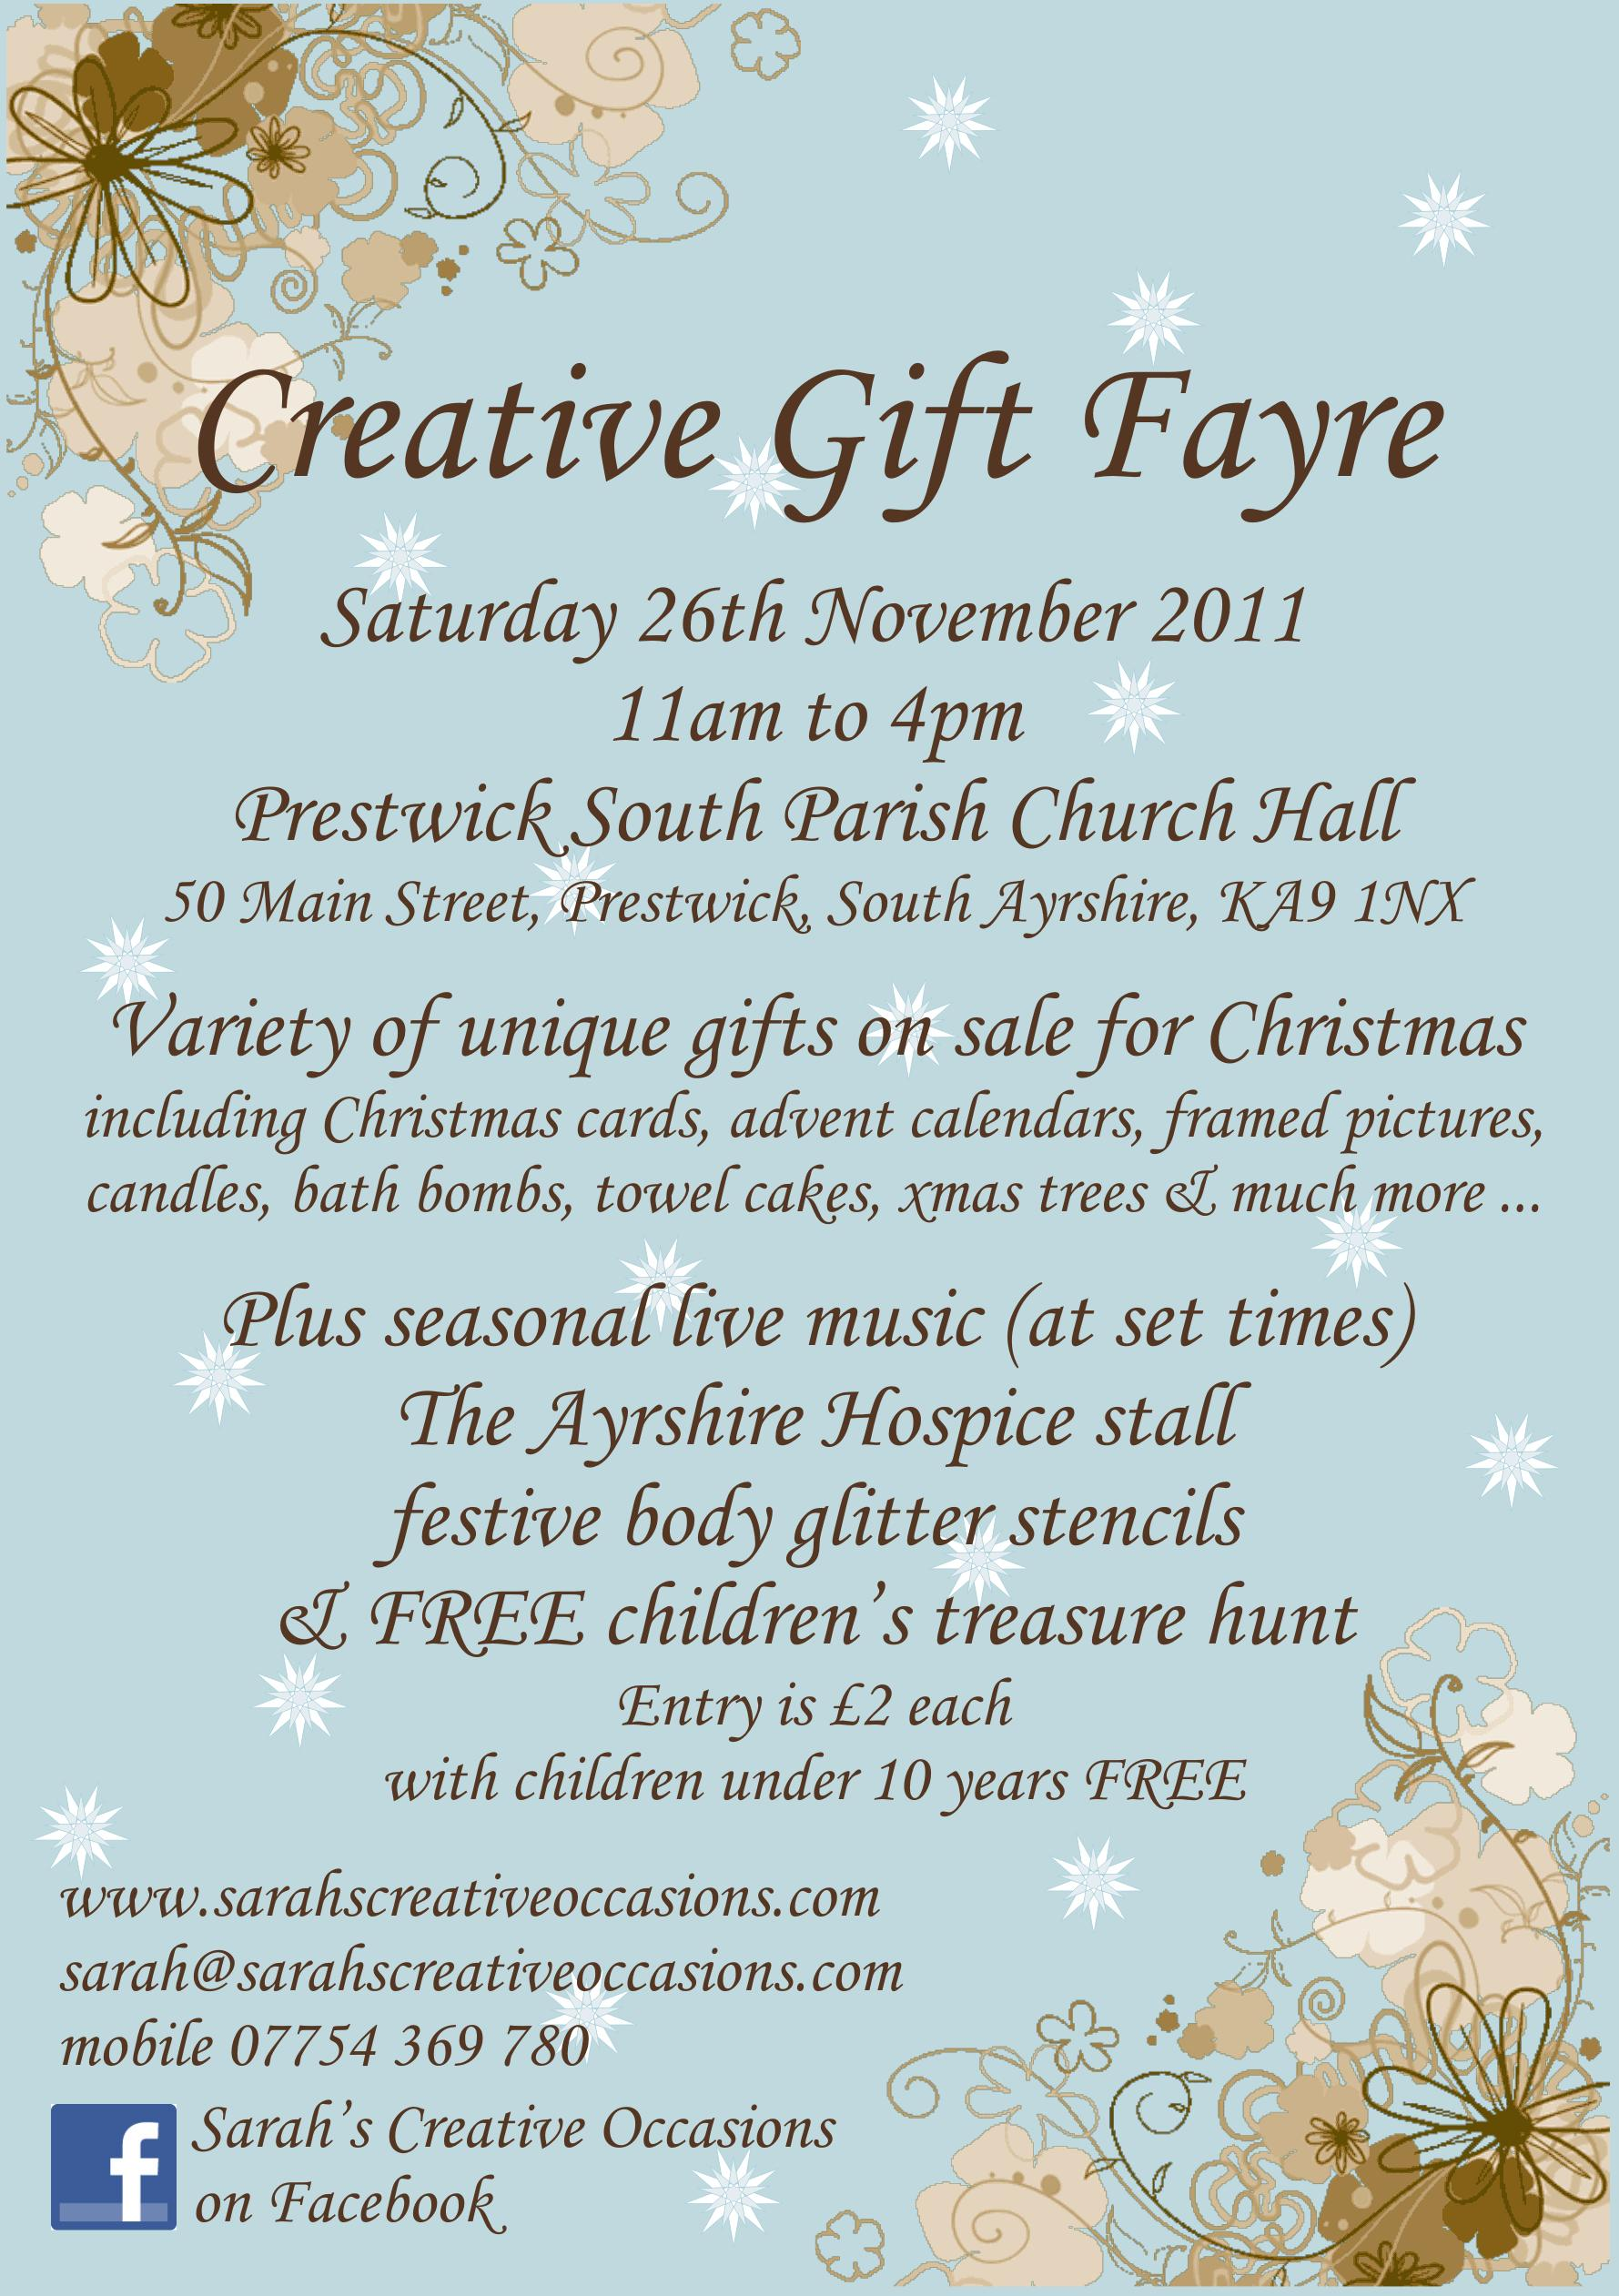 Creative Gift Fayre in Prestwick Flyer for 26 November 2011